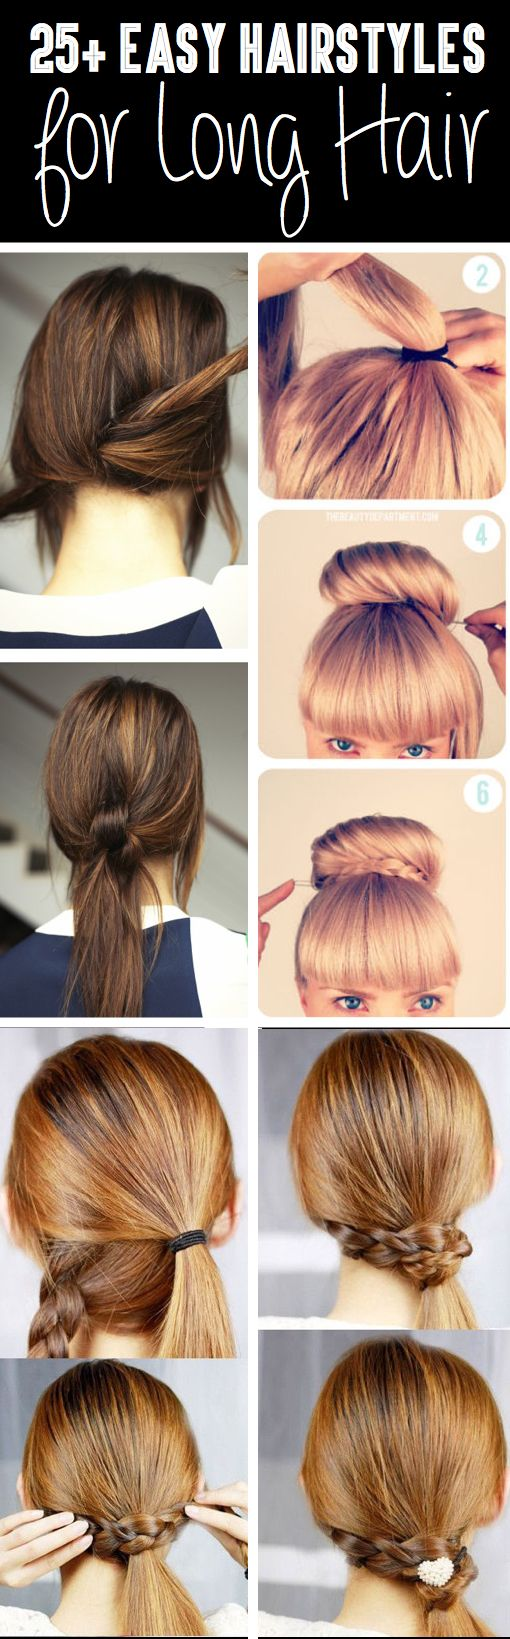 From classy to cute easy hairstyles for long hairueueueuefor when